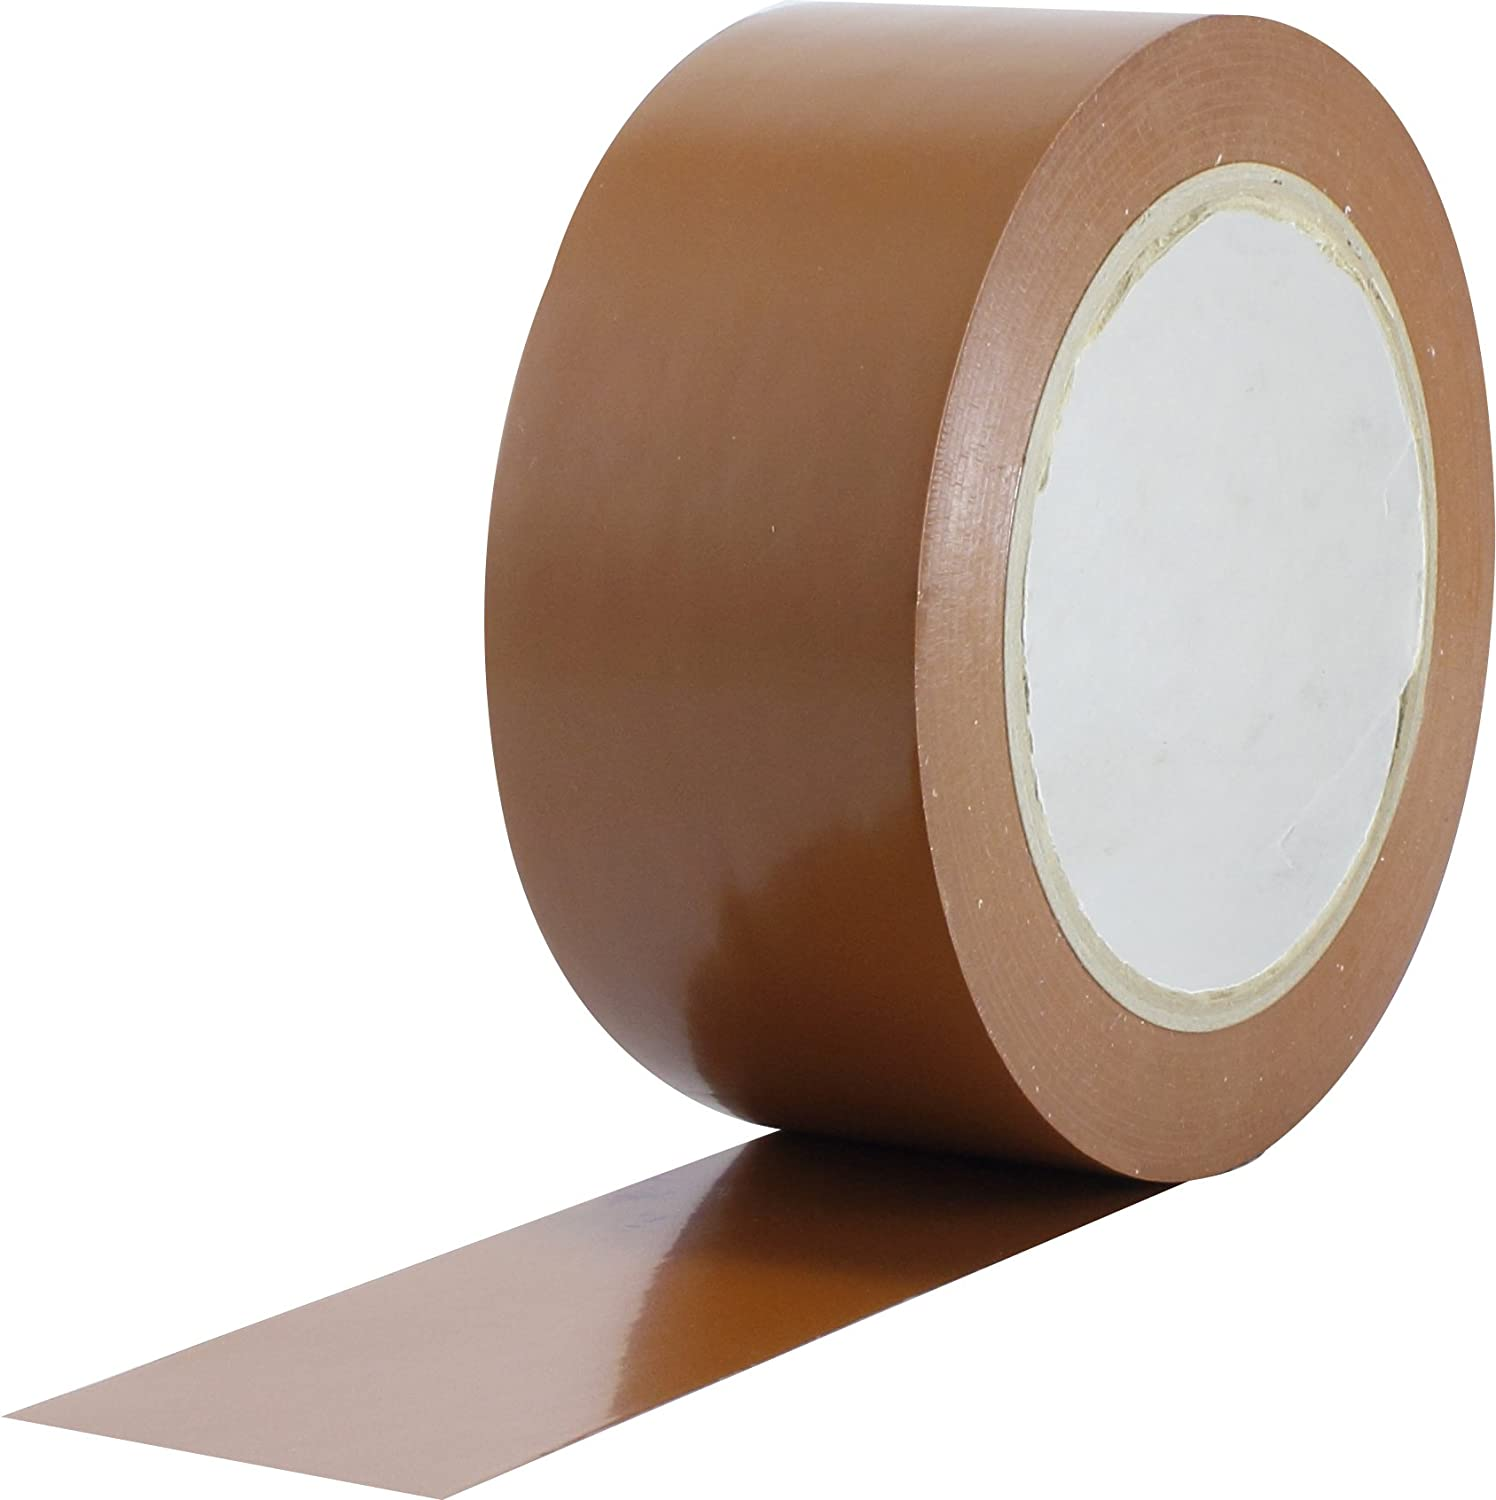 ProTapes Pro 50 Premium Vinyl Safety Marking and Dance Floor Splicing Tape, 6 Mils Thick, 36 Yds Length X 1' Width, Brown (Pack of 1) 36 Yds Length X 1 Width ProTapes & Specialties 50-6-1x36-BR